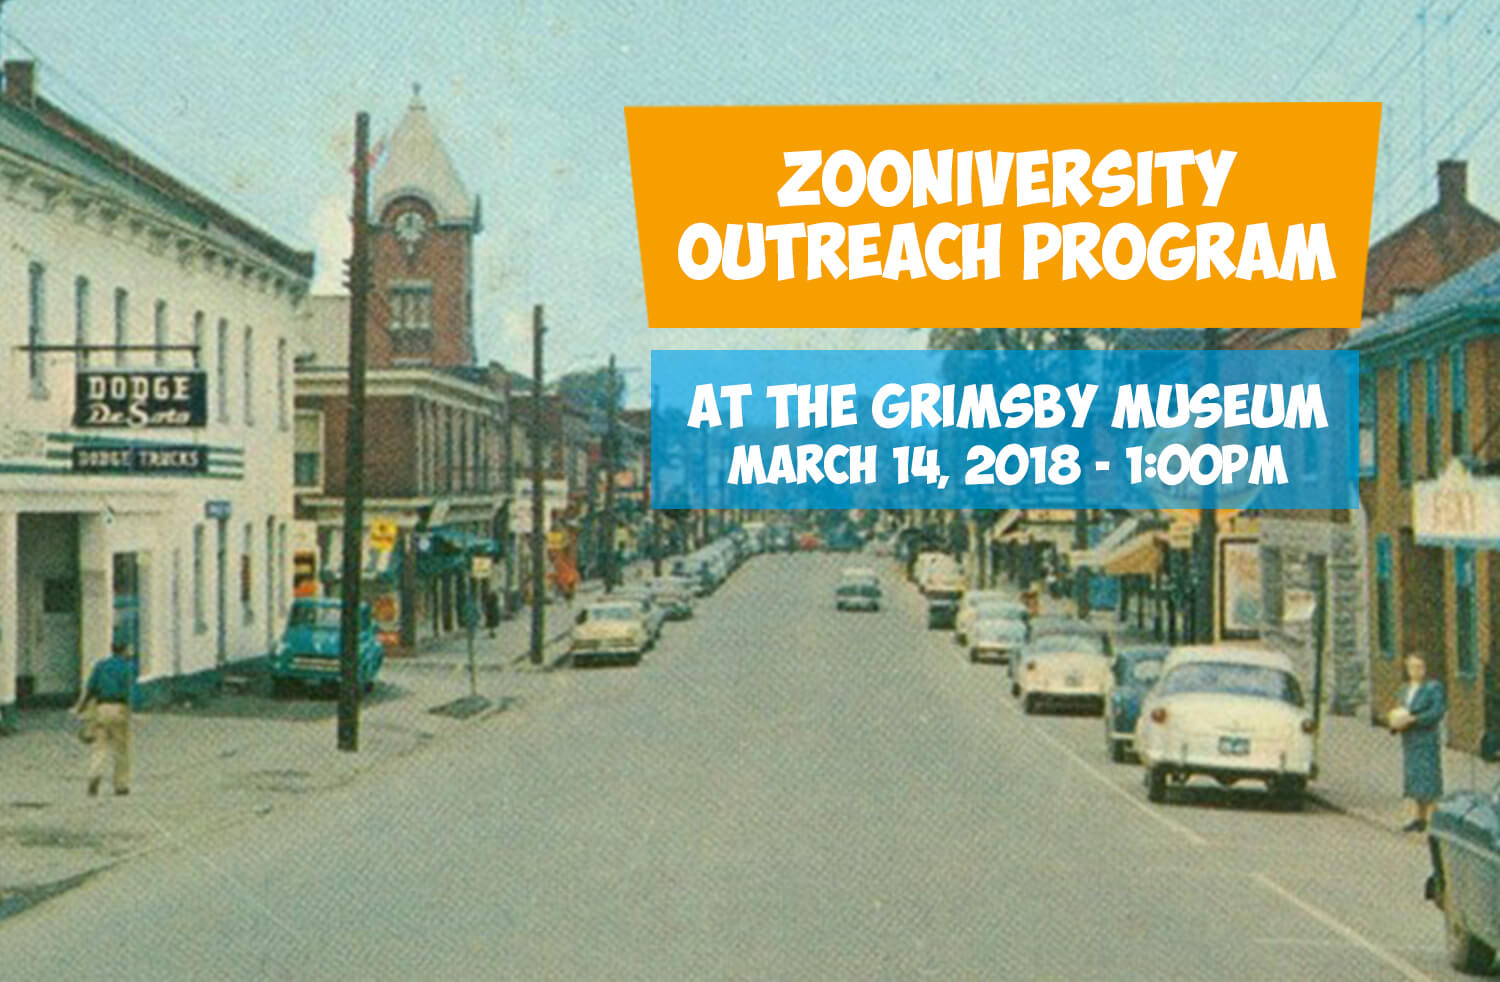 Zooniversity at the Grimsby Museum